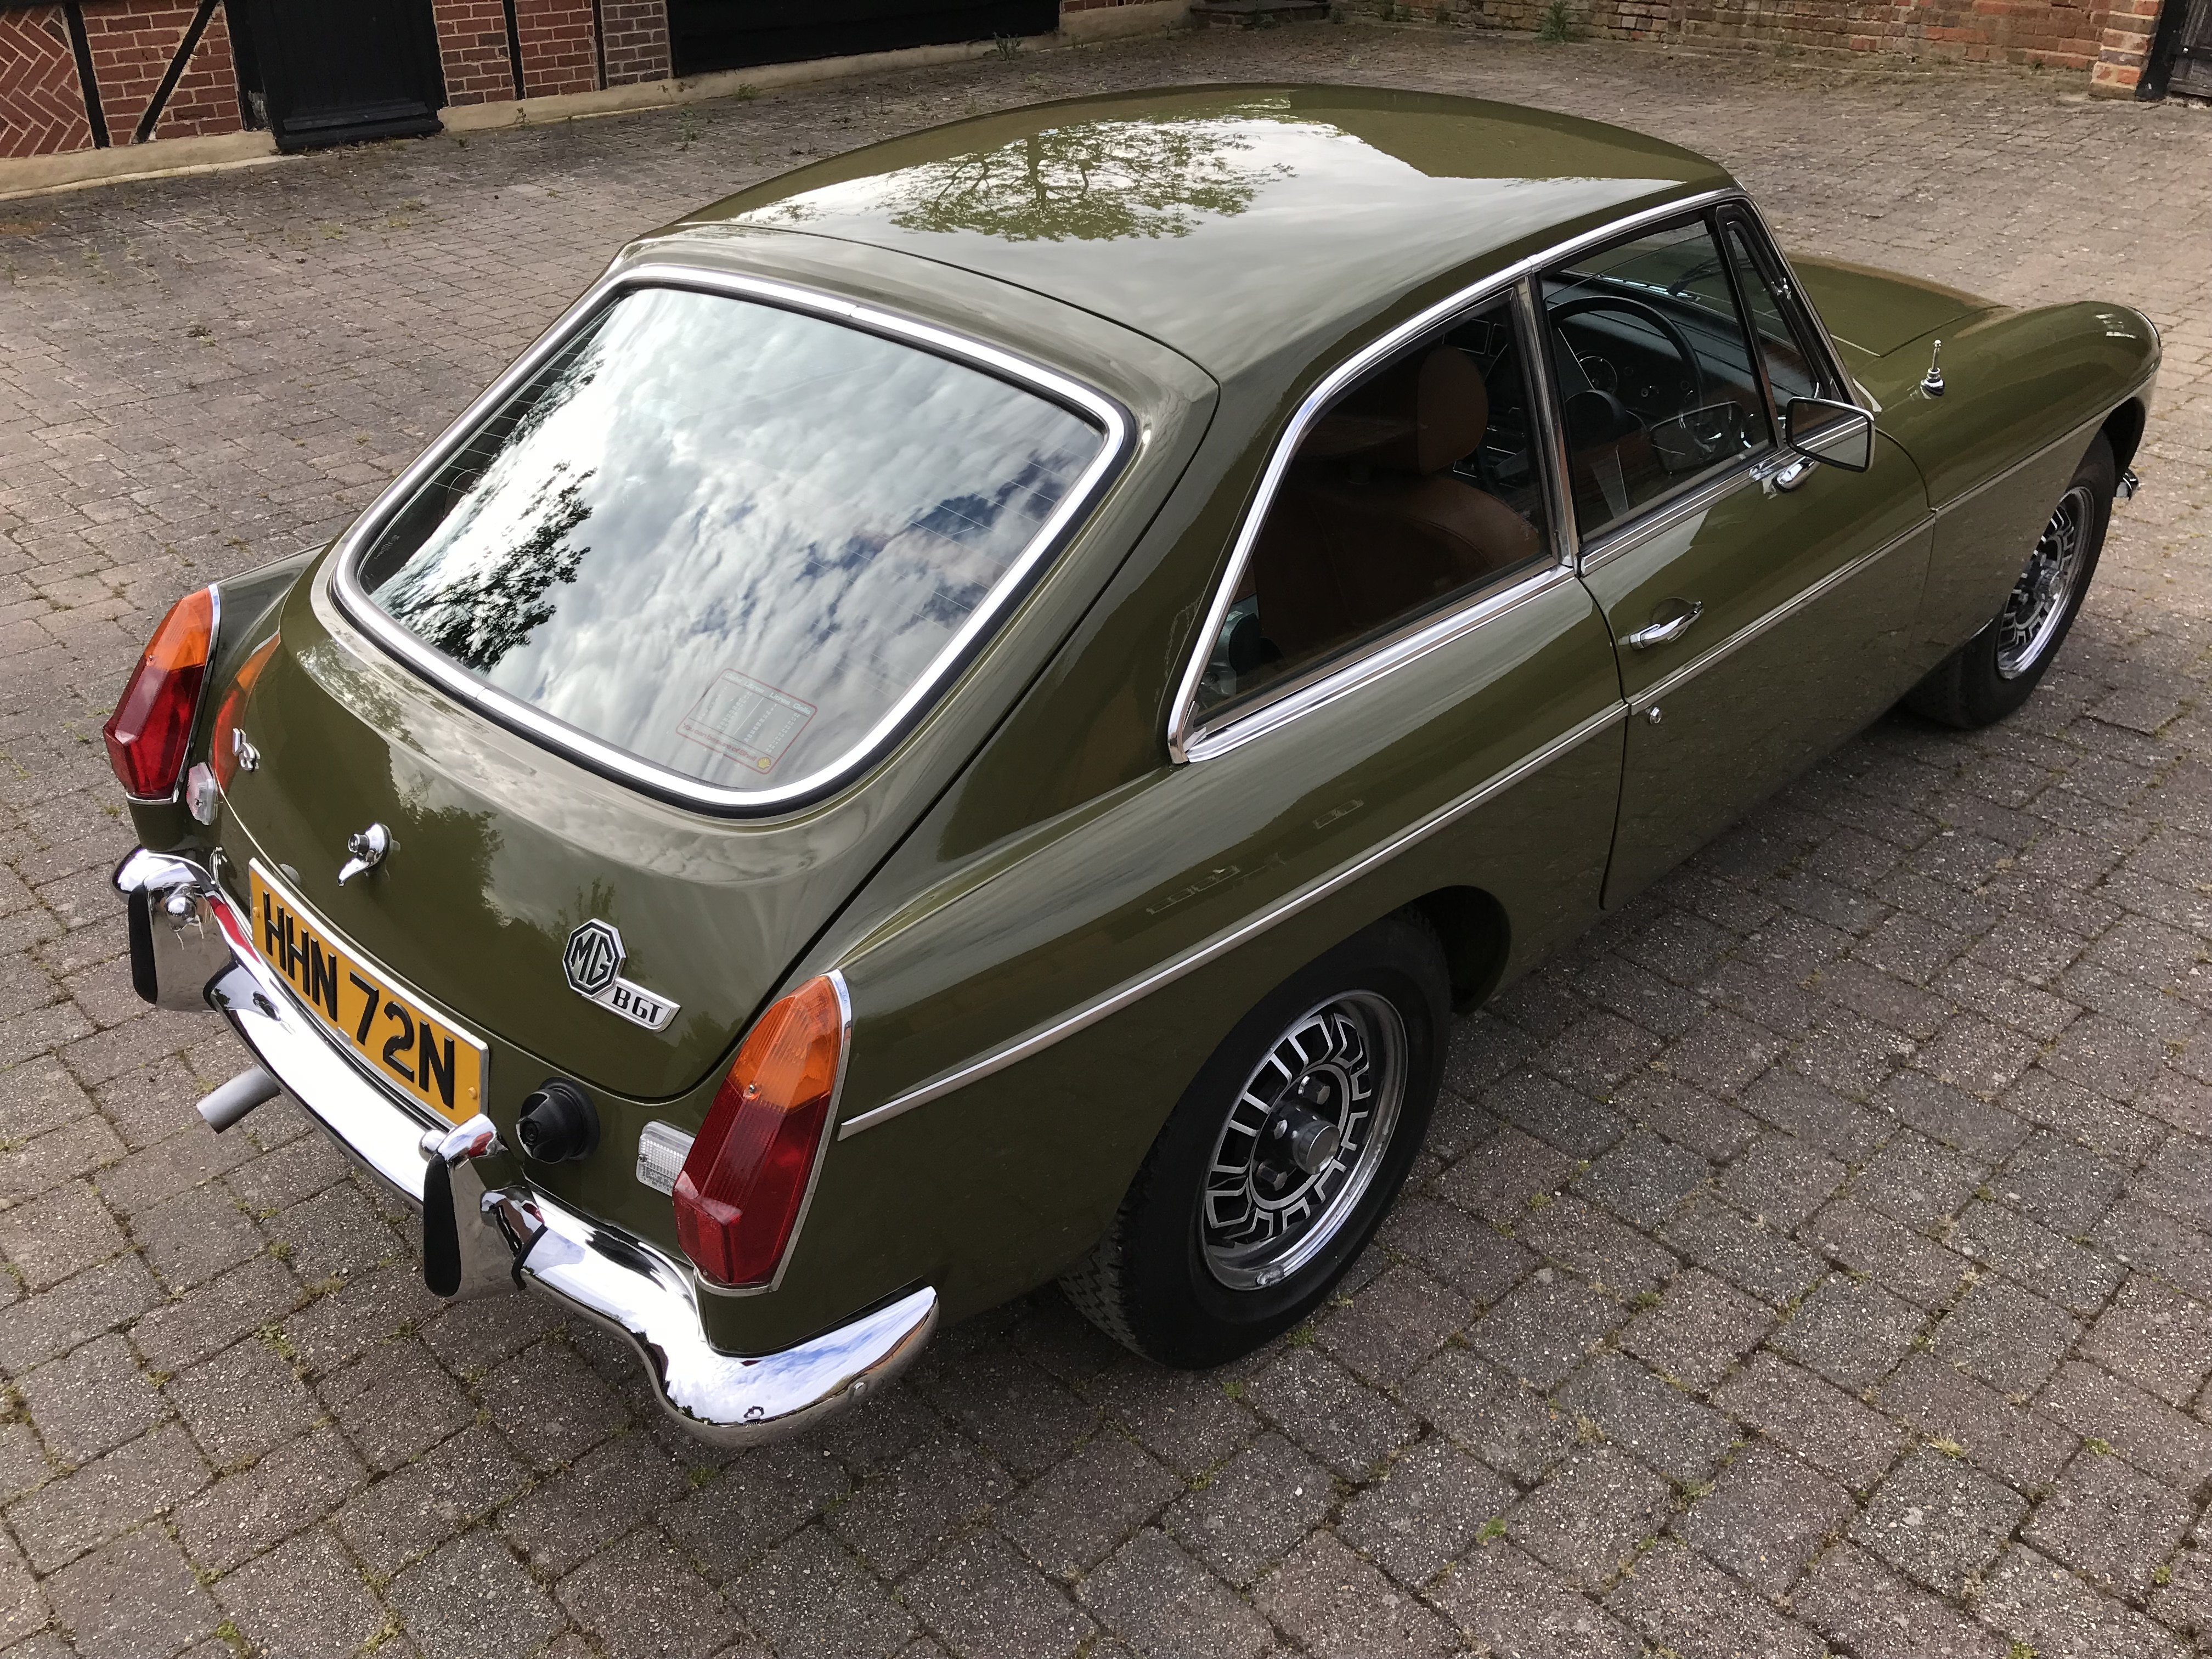 1975 MG BGT low mileage for the year For Sale (picture 12 of 12)